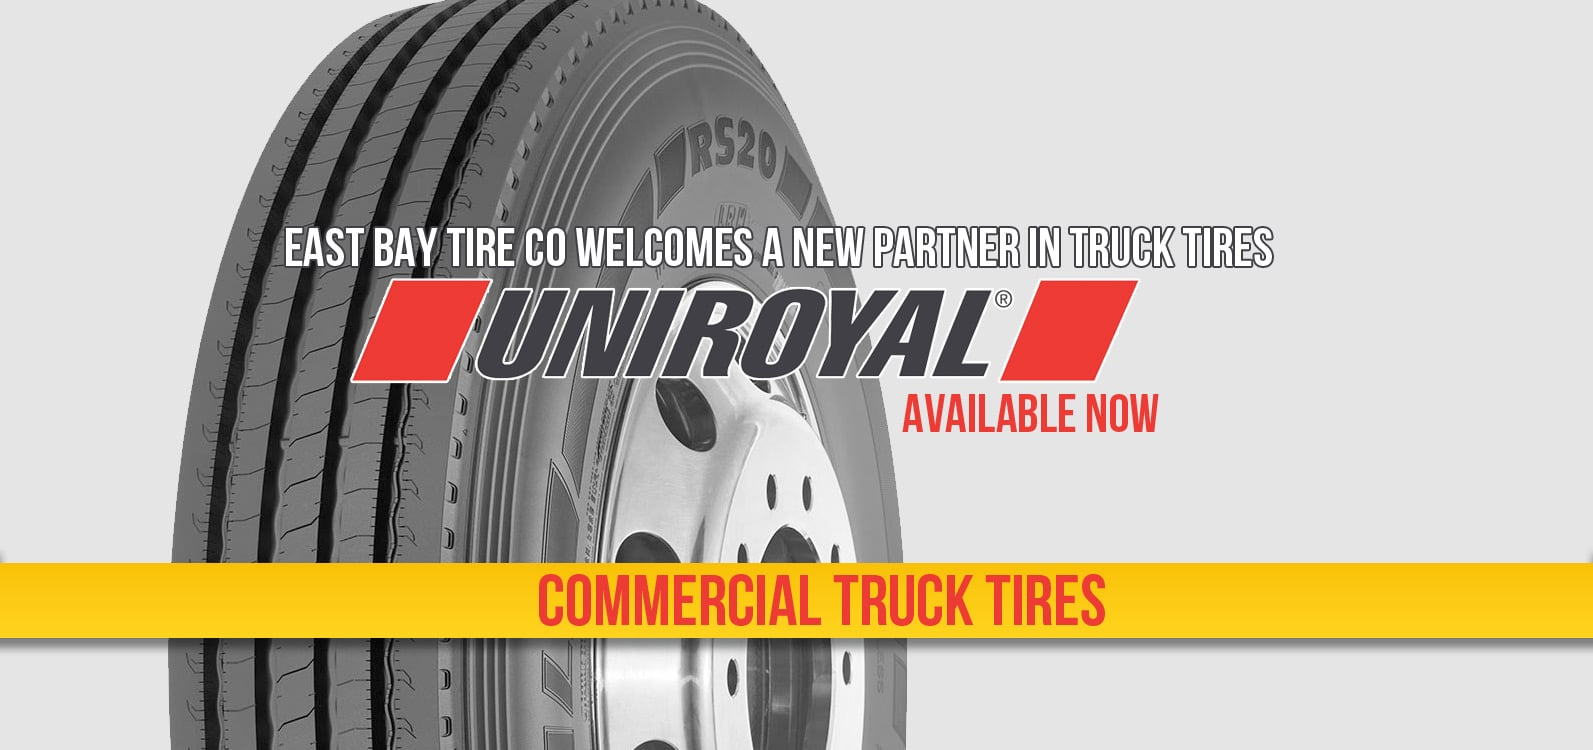 East Bay Tire >> East Bay Tire Welcomes Uniroyal East Bay Tire Co